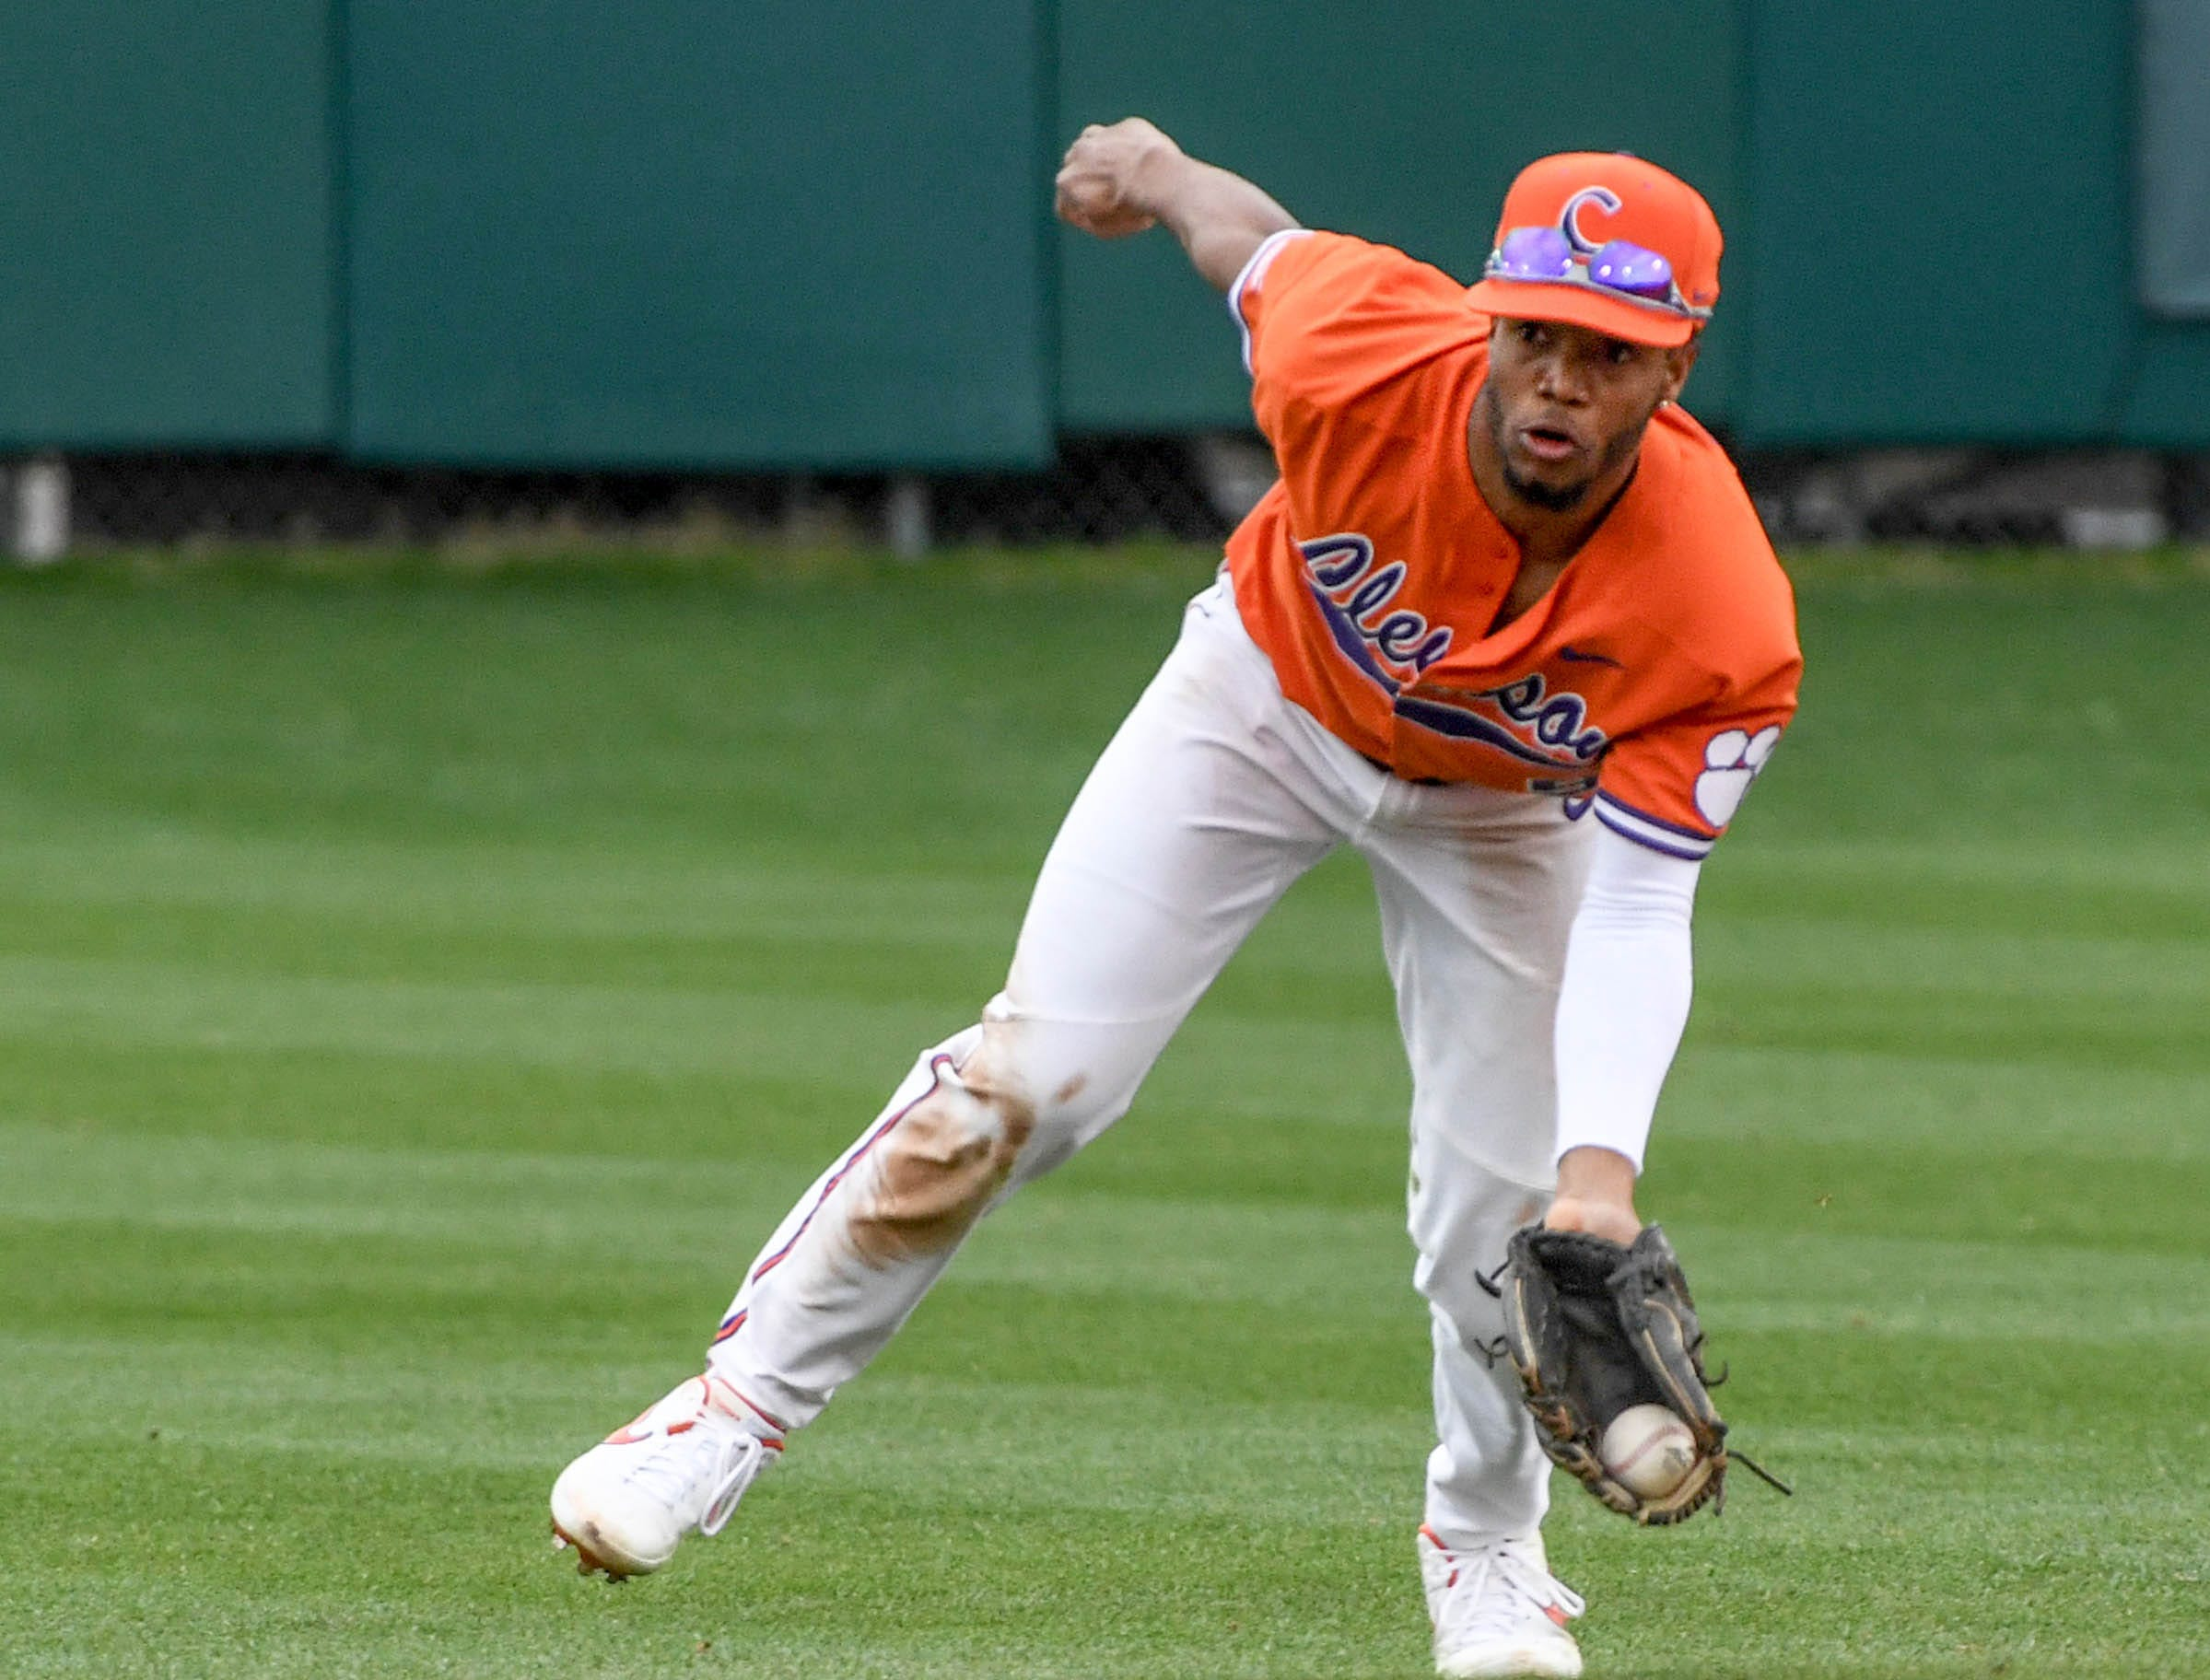 Clemson infielder Jordan Greene(9) scoops a ground ball against South Alabama during the top of the fifth inning at Doug Kingsmore Stadium in Clemson Friday, February 15, 2019.